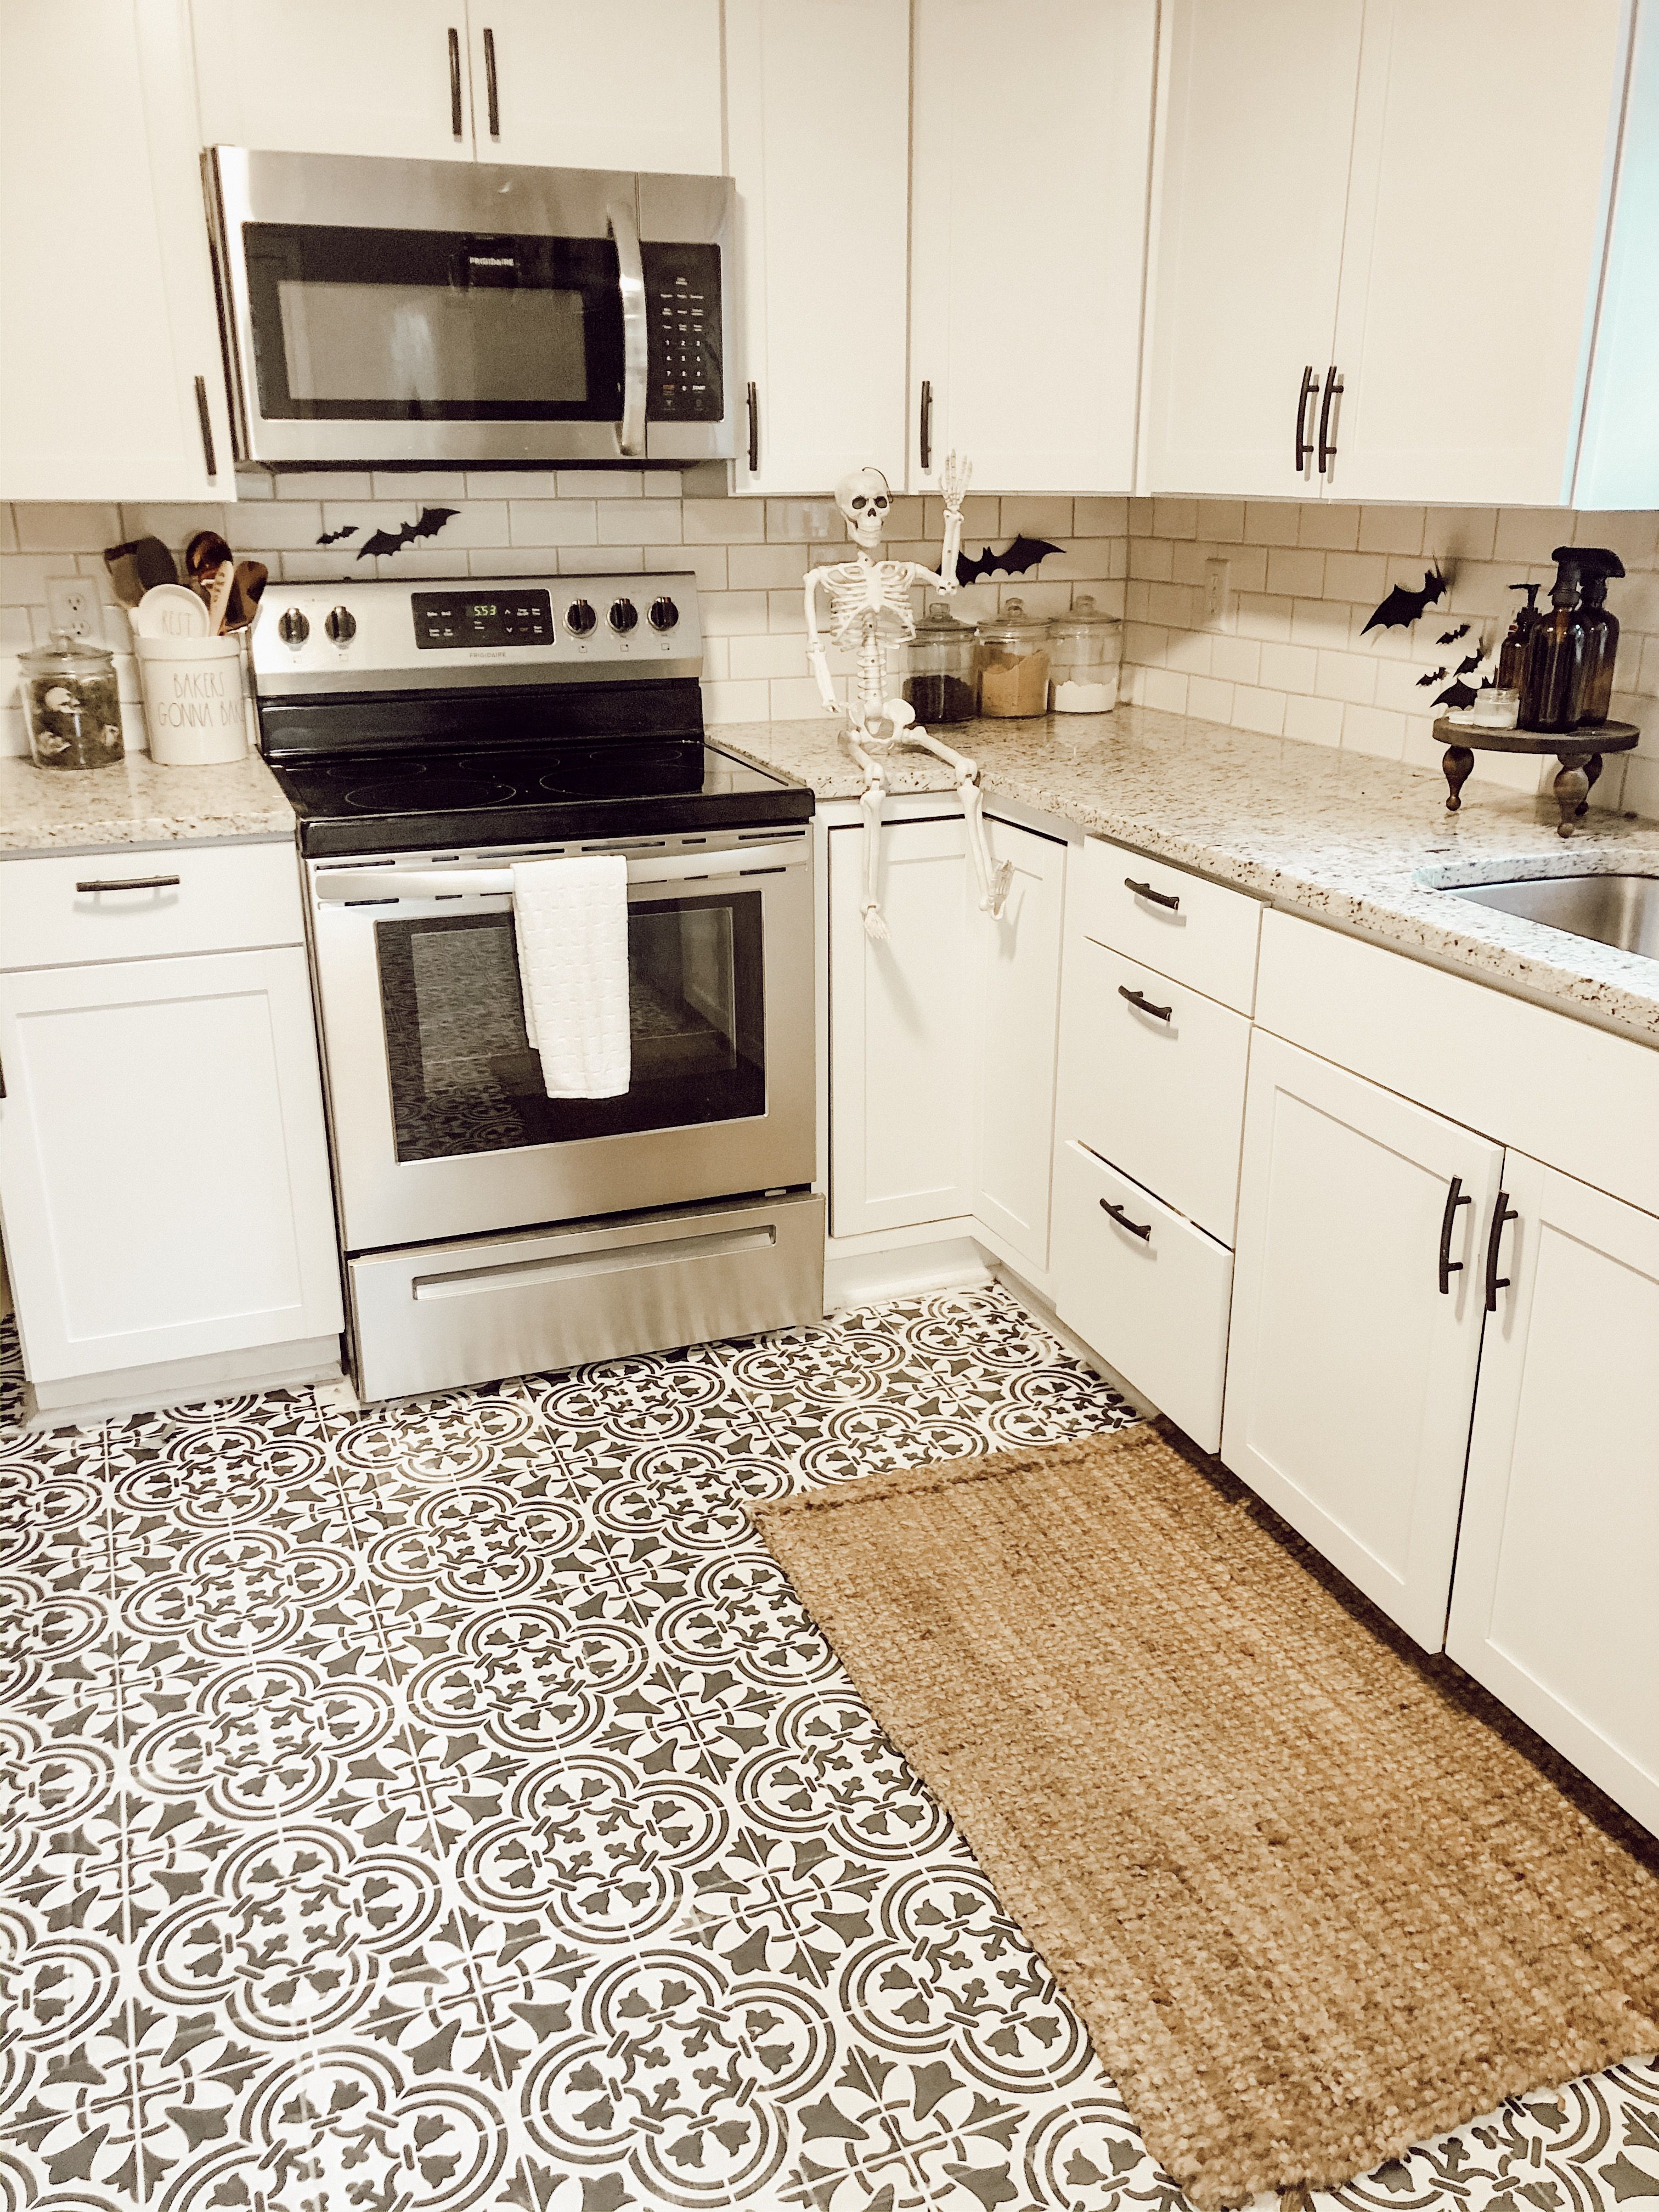 Farmhouse Kitchen Patterned Kitchen Tiles Kitchen Floor Tile Patterns Painting Kitchen Tiles